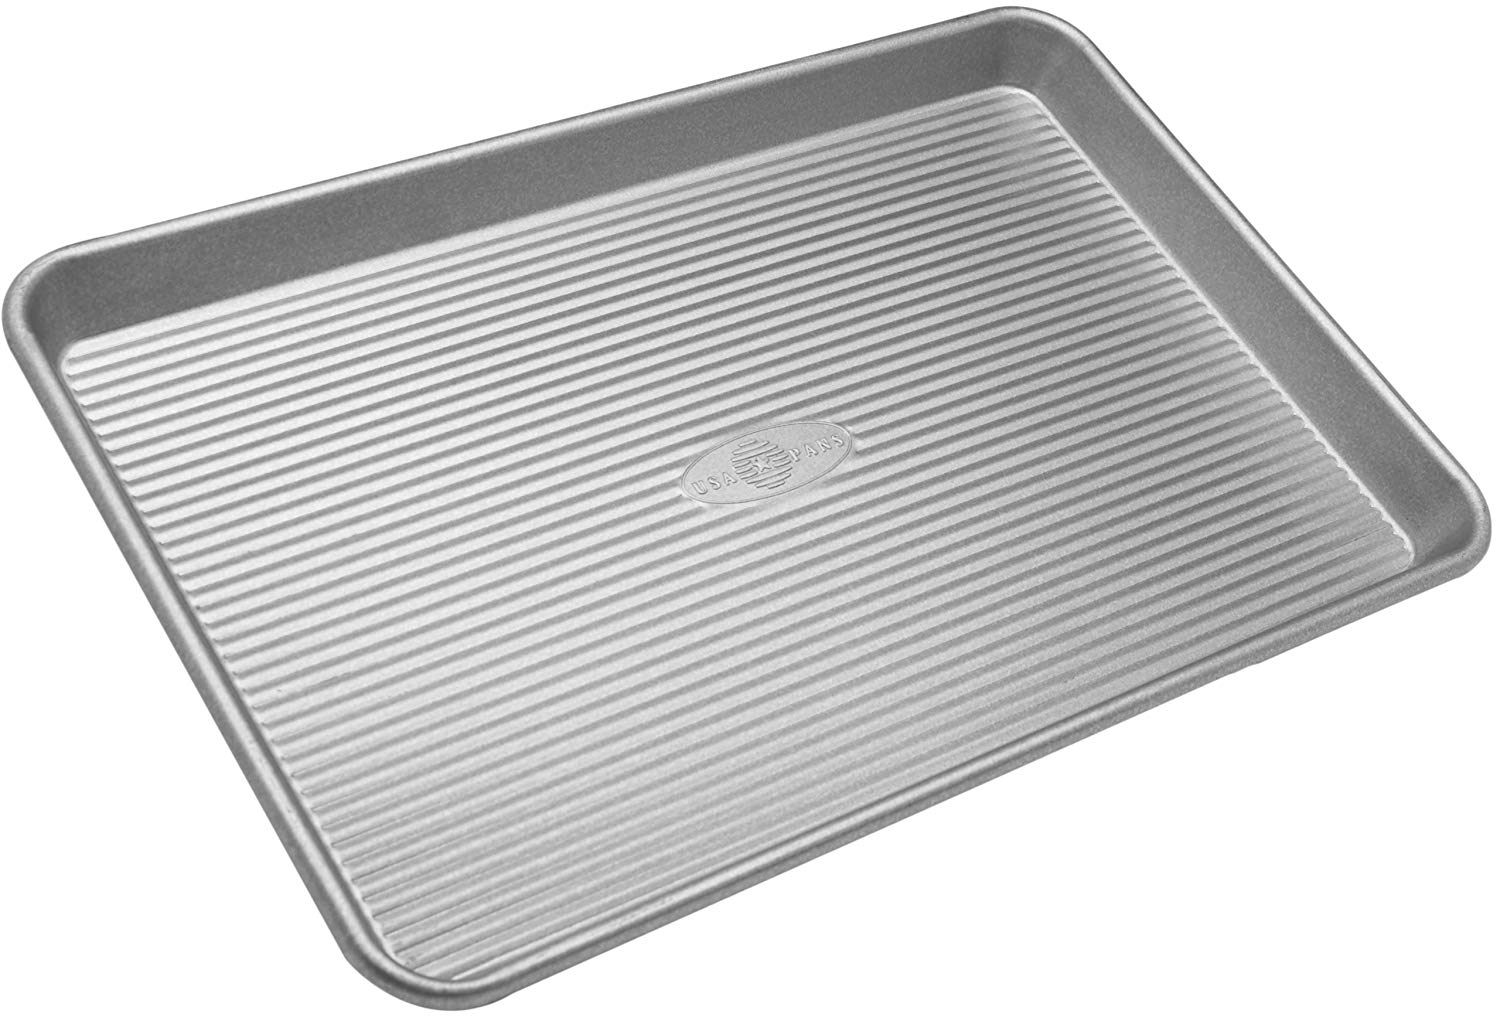 Usa pan bakeware half sheet